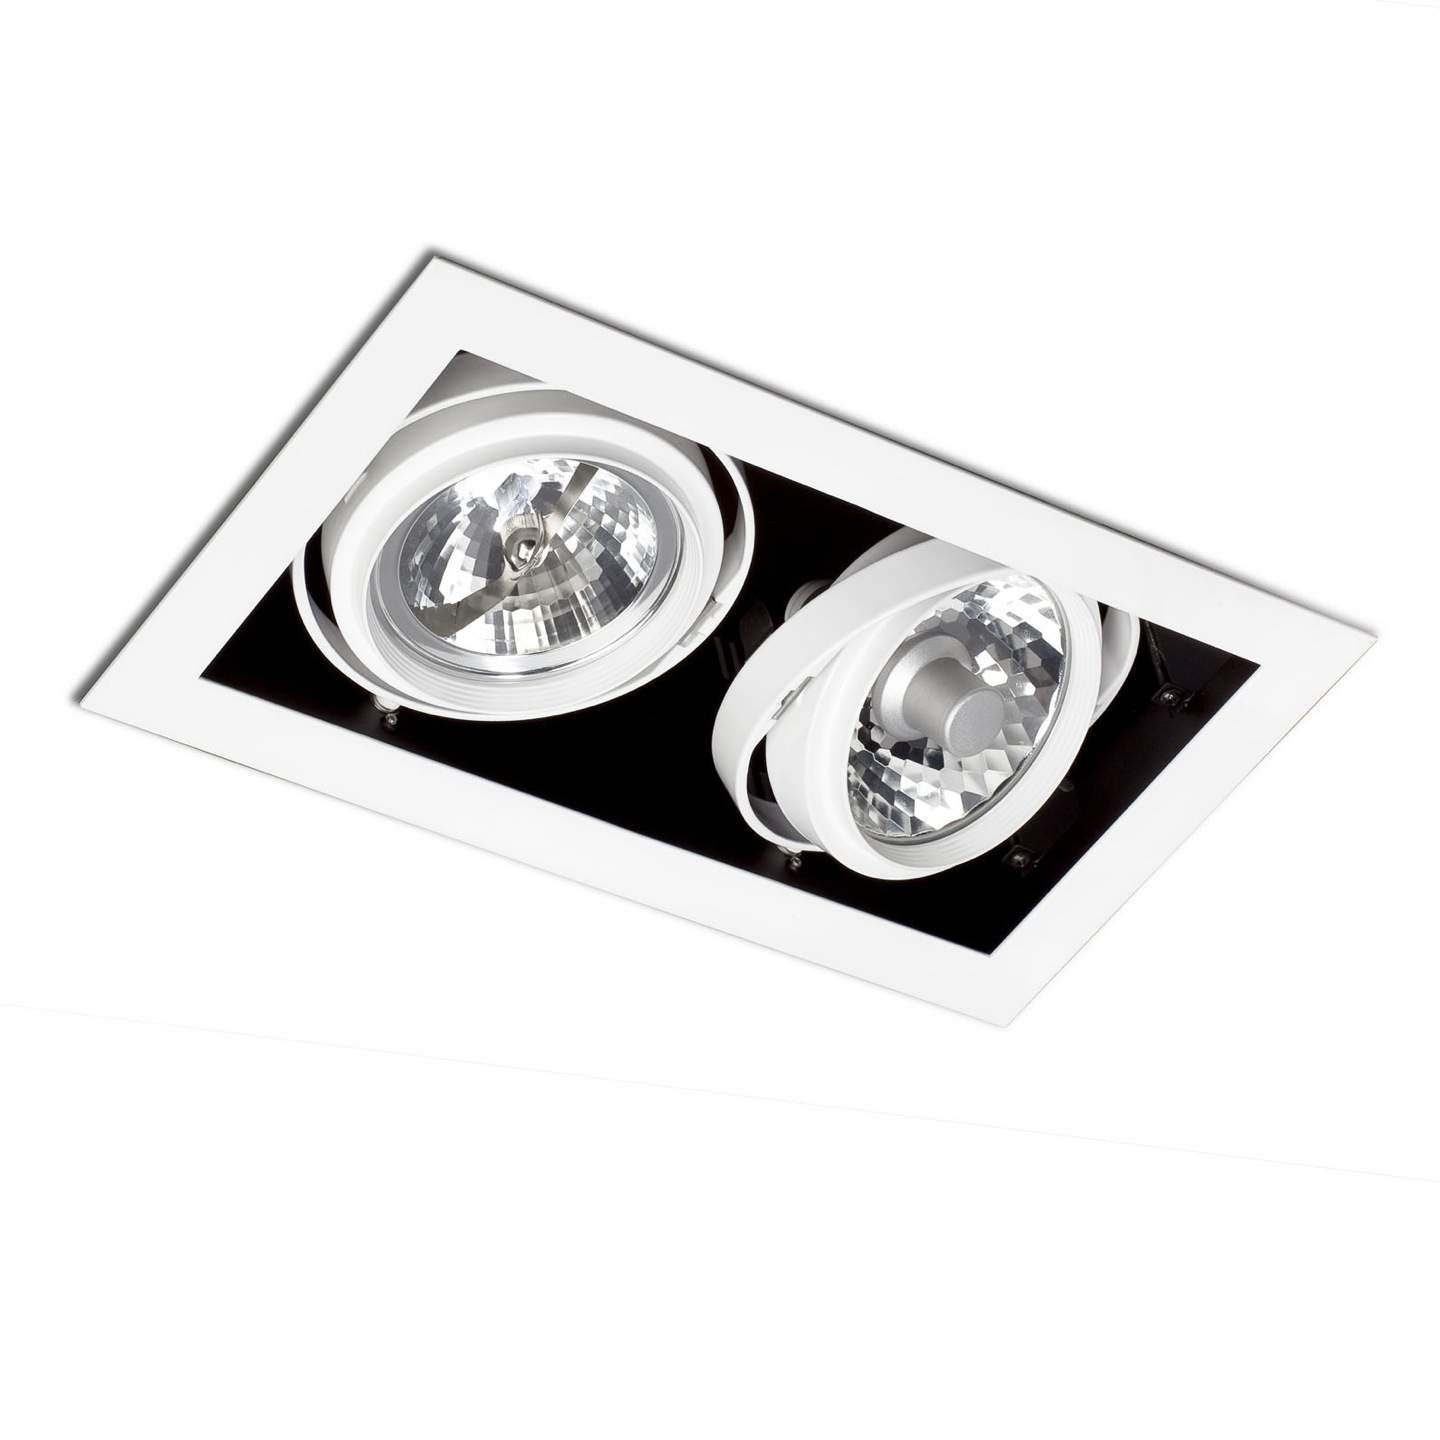 Morris Recessed Ceiling (body without PortaLámpara s) 2xElements Black